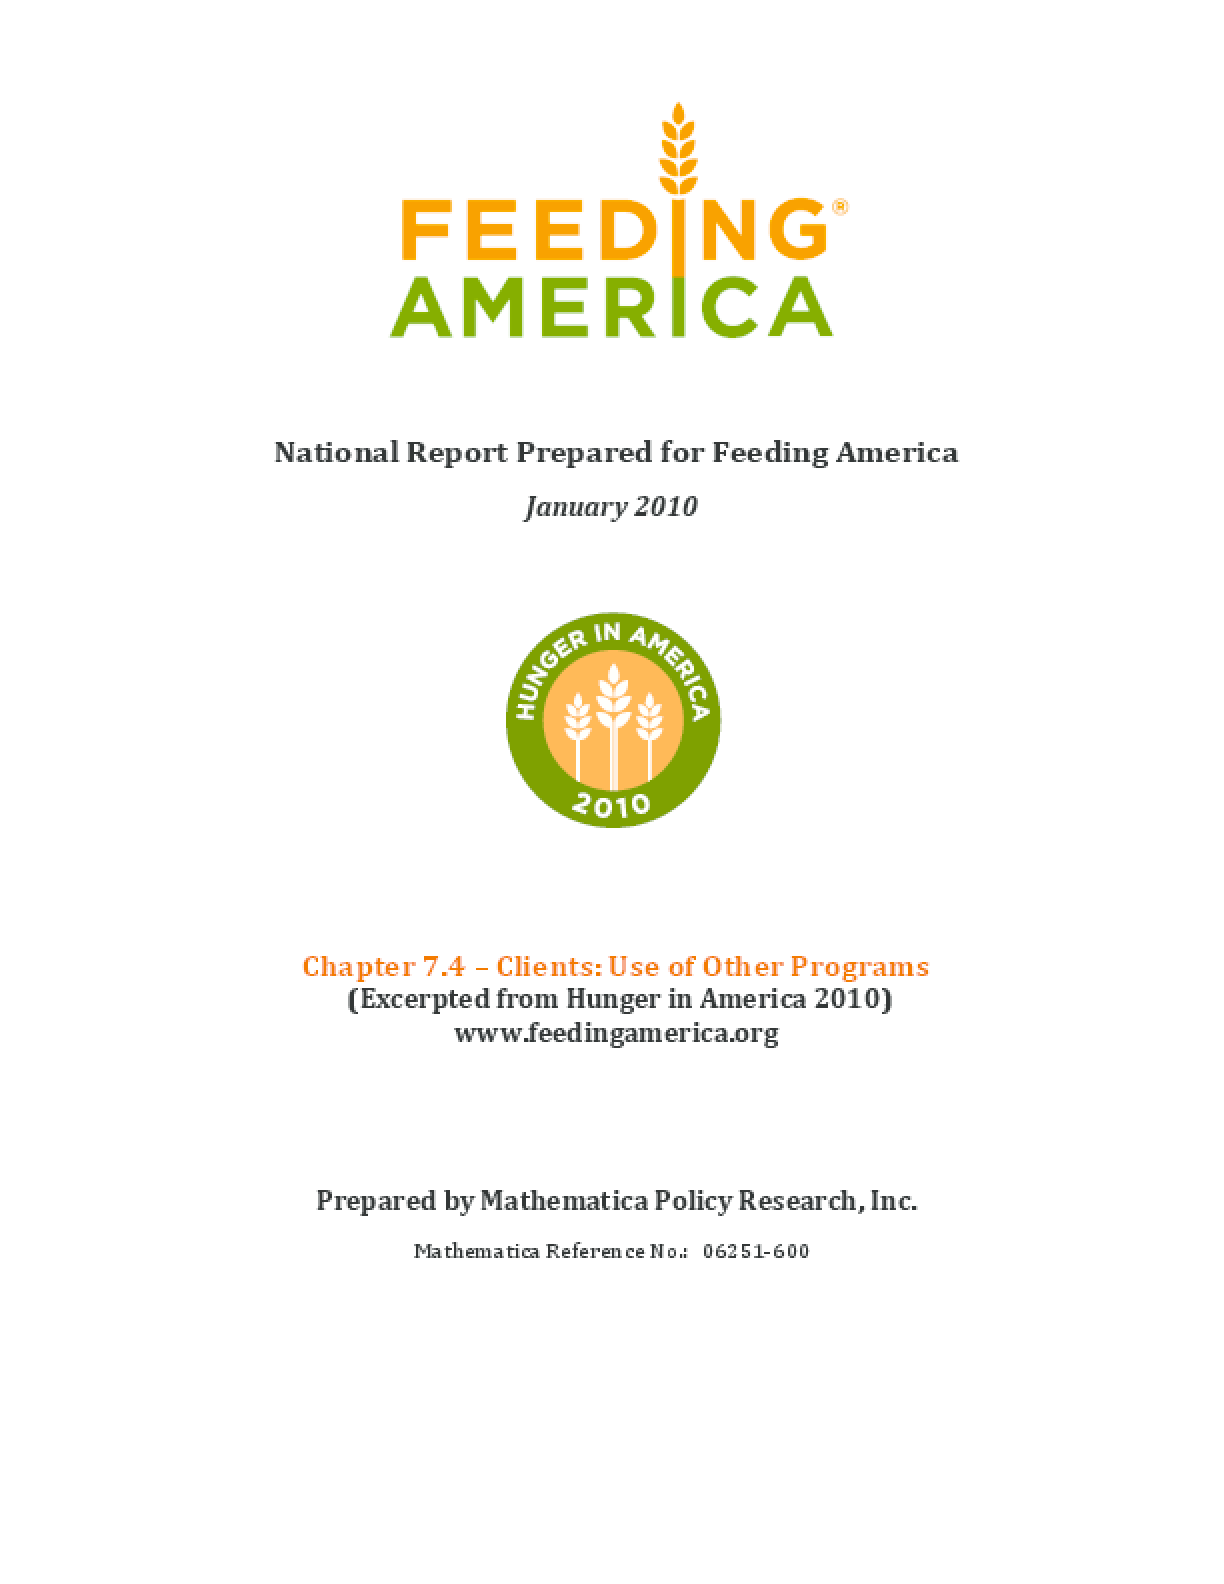 Use of Other Programs By Feeding America Client Households